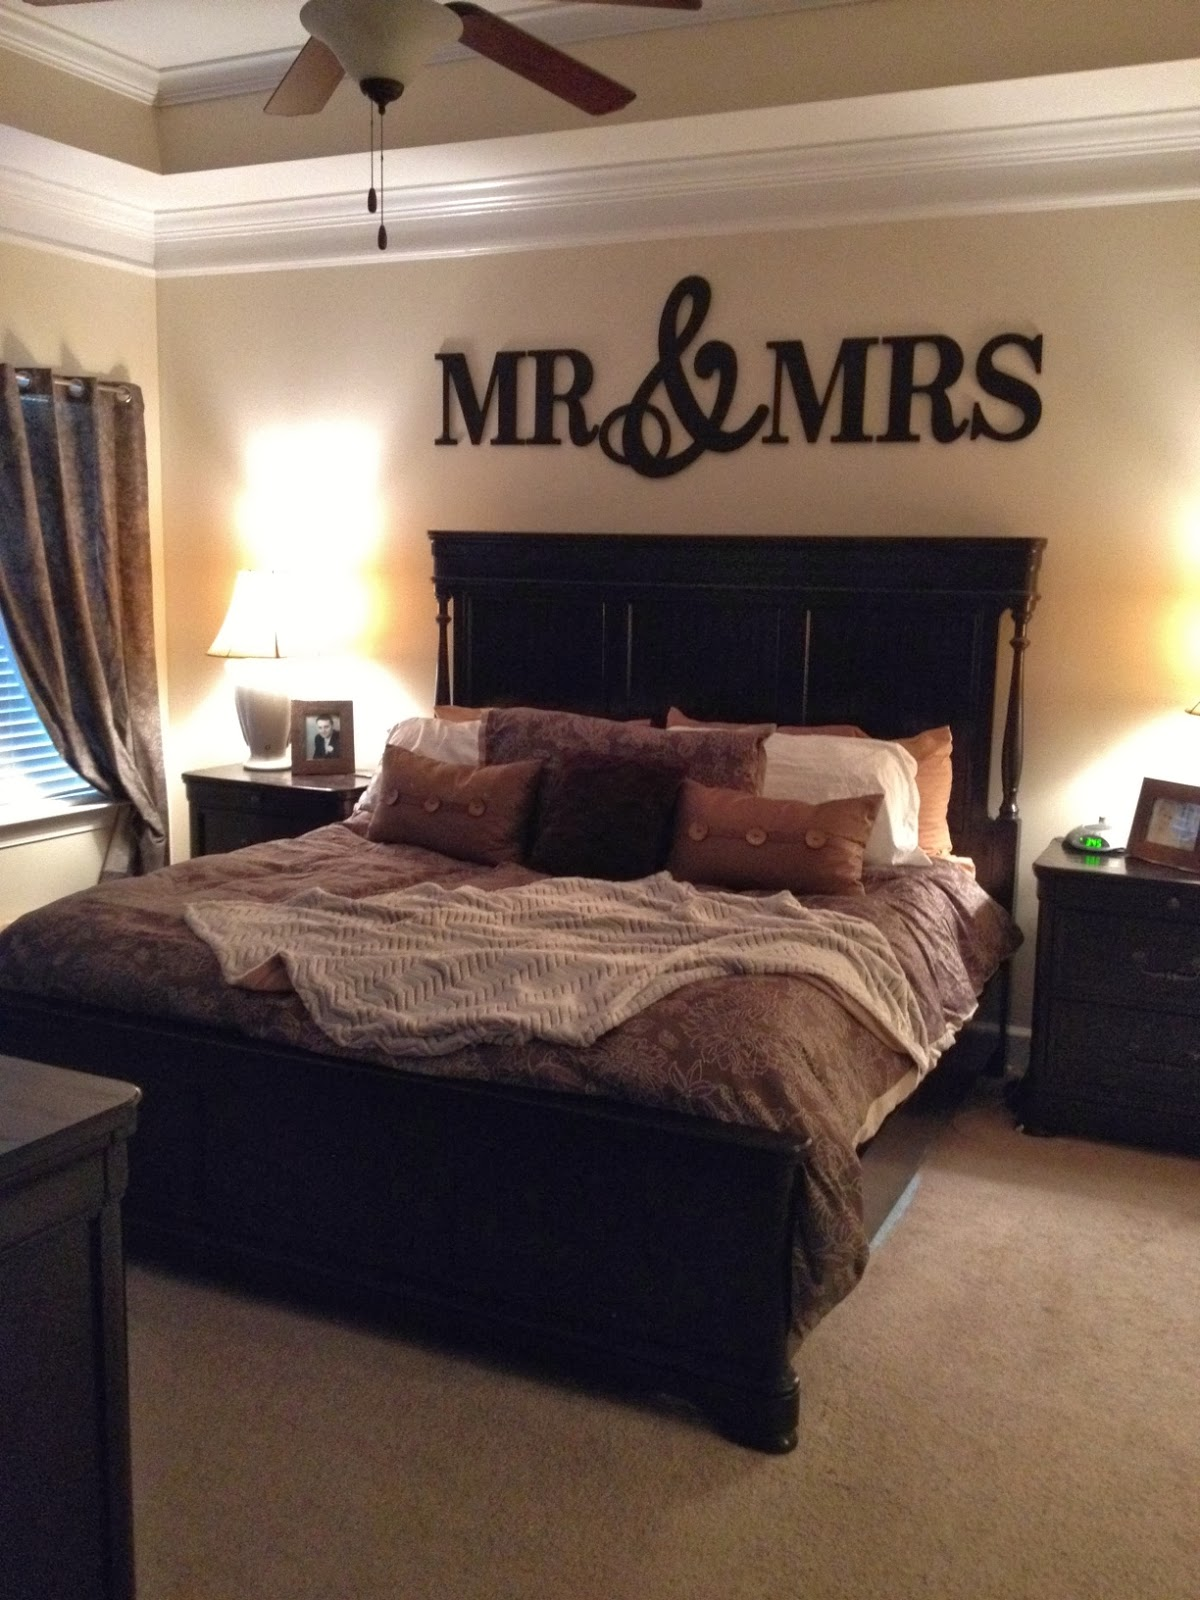 Simply the simmons mr mrs for Master room decor ideas